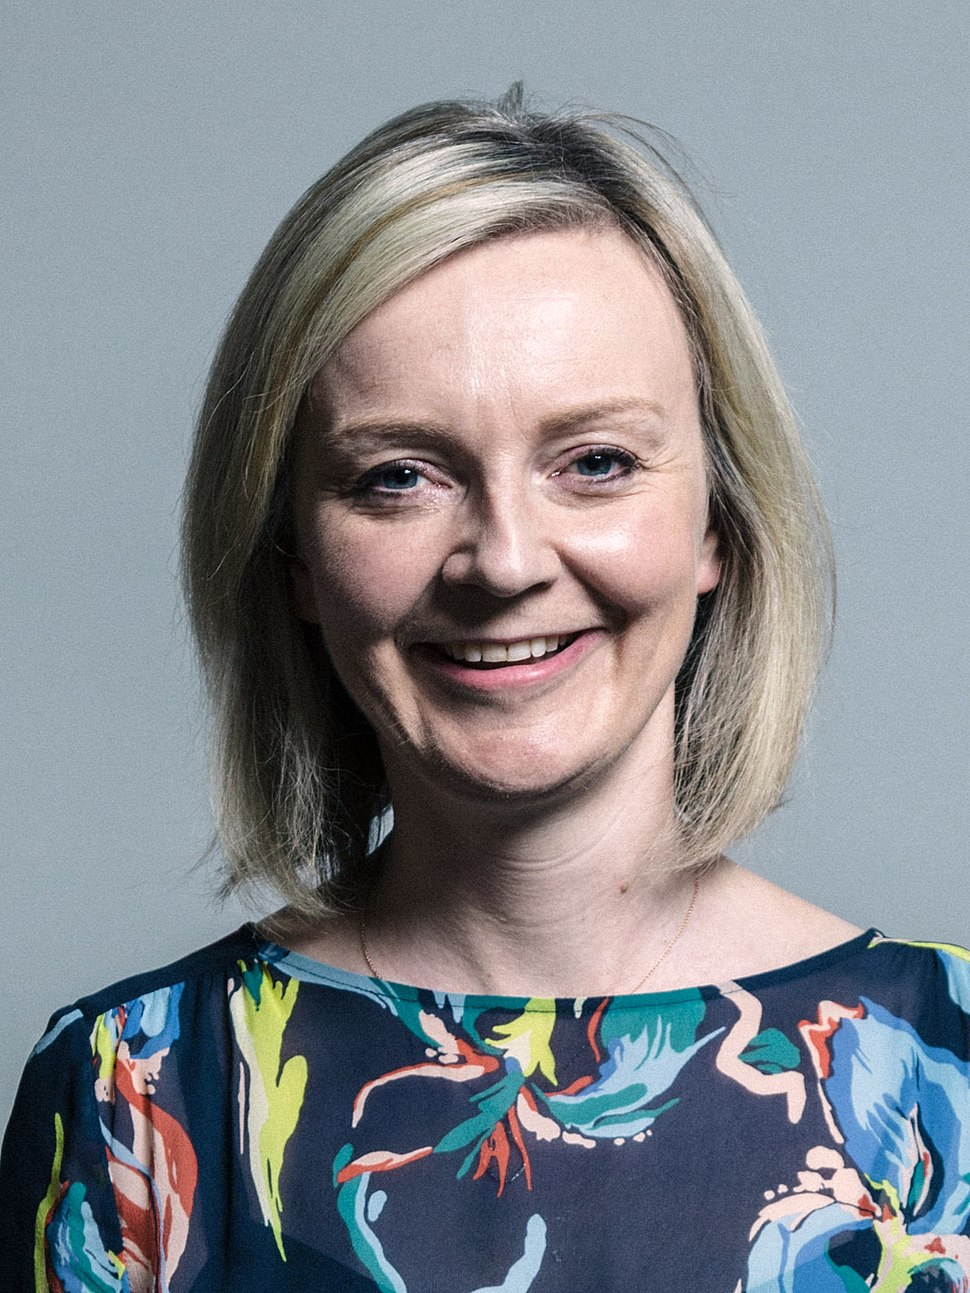 Official portrait of Elizabeth Truss crop 2